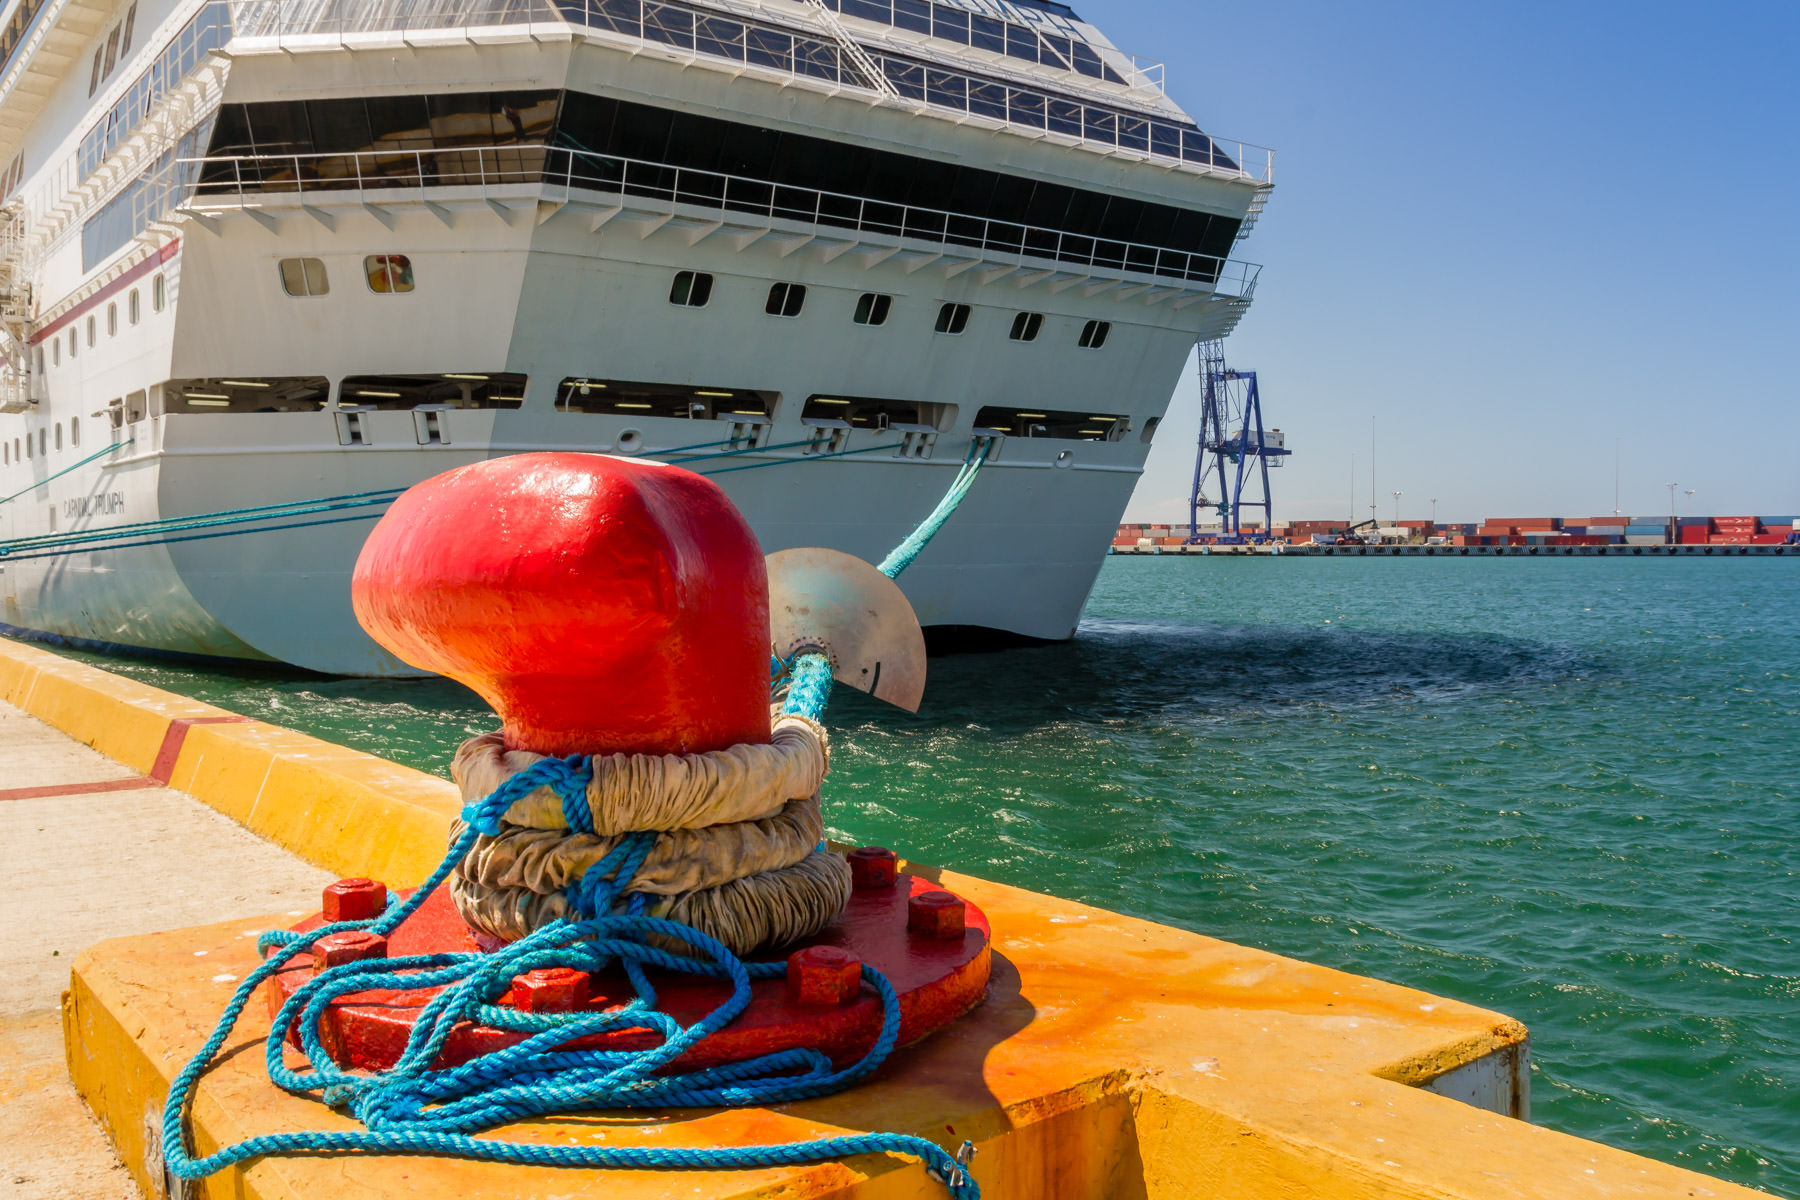 A hawser, or large rope, ties the Carnival Triumph to a dock's bitt at Progreso, Mexico.